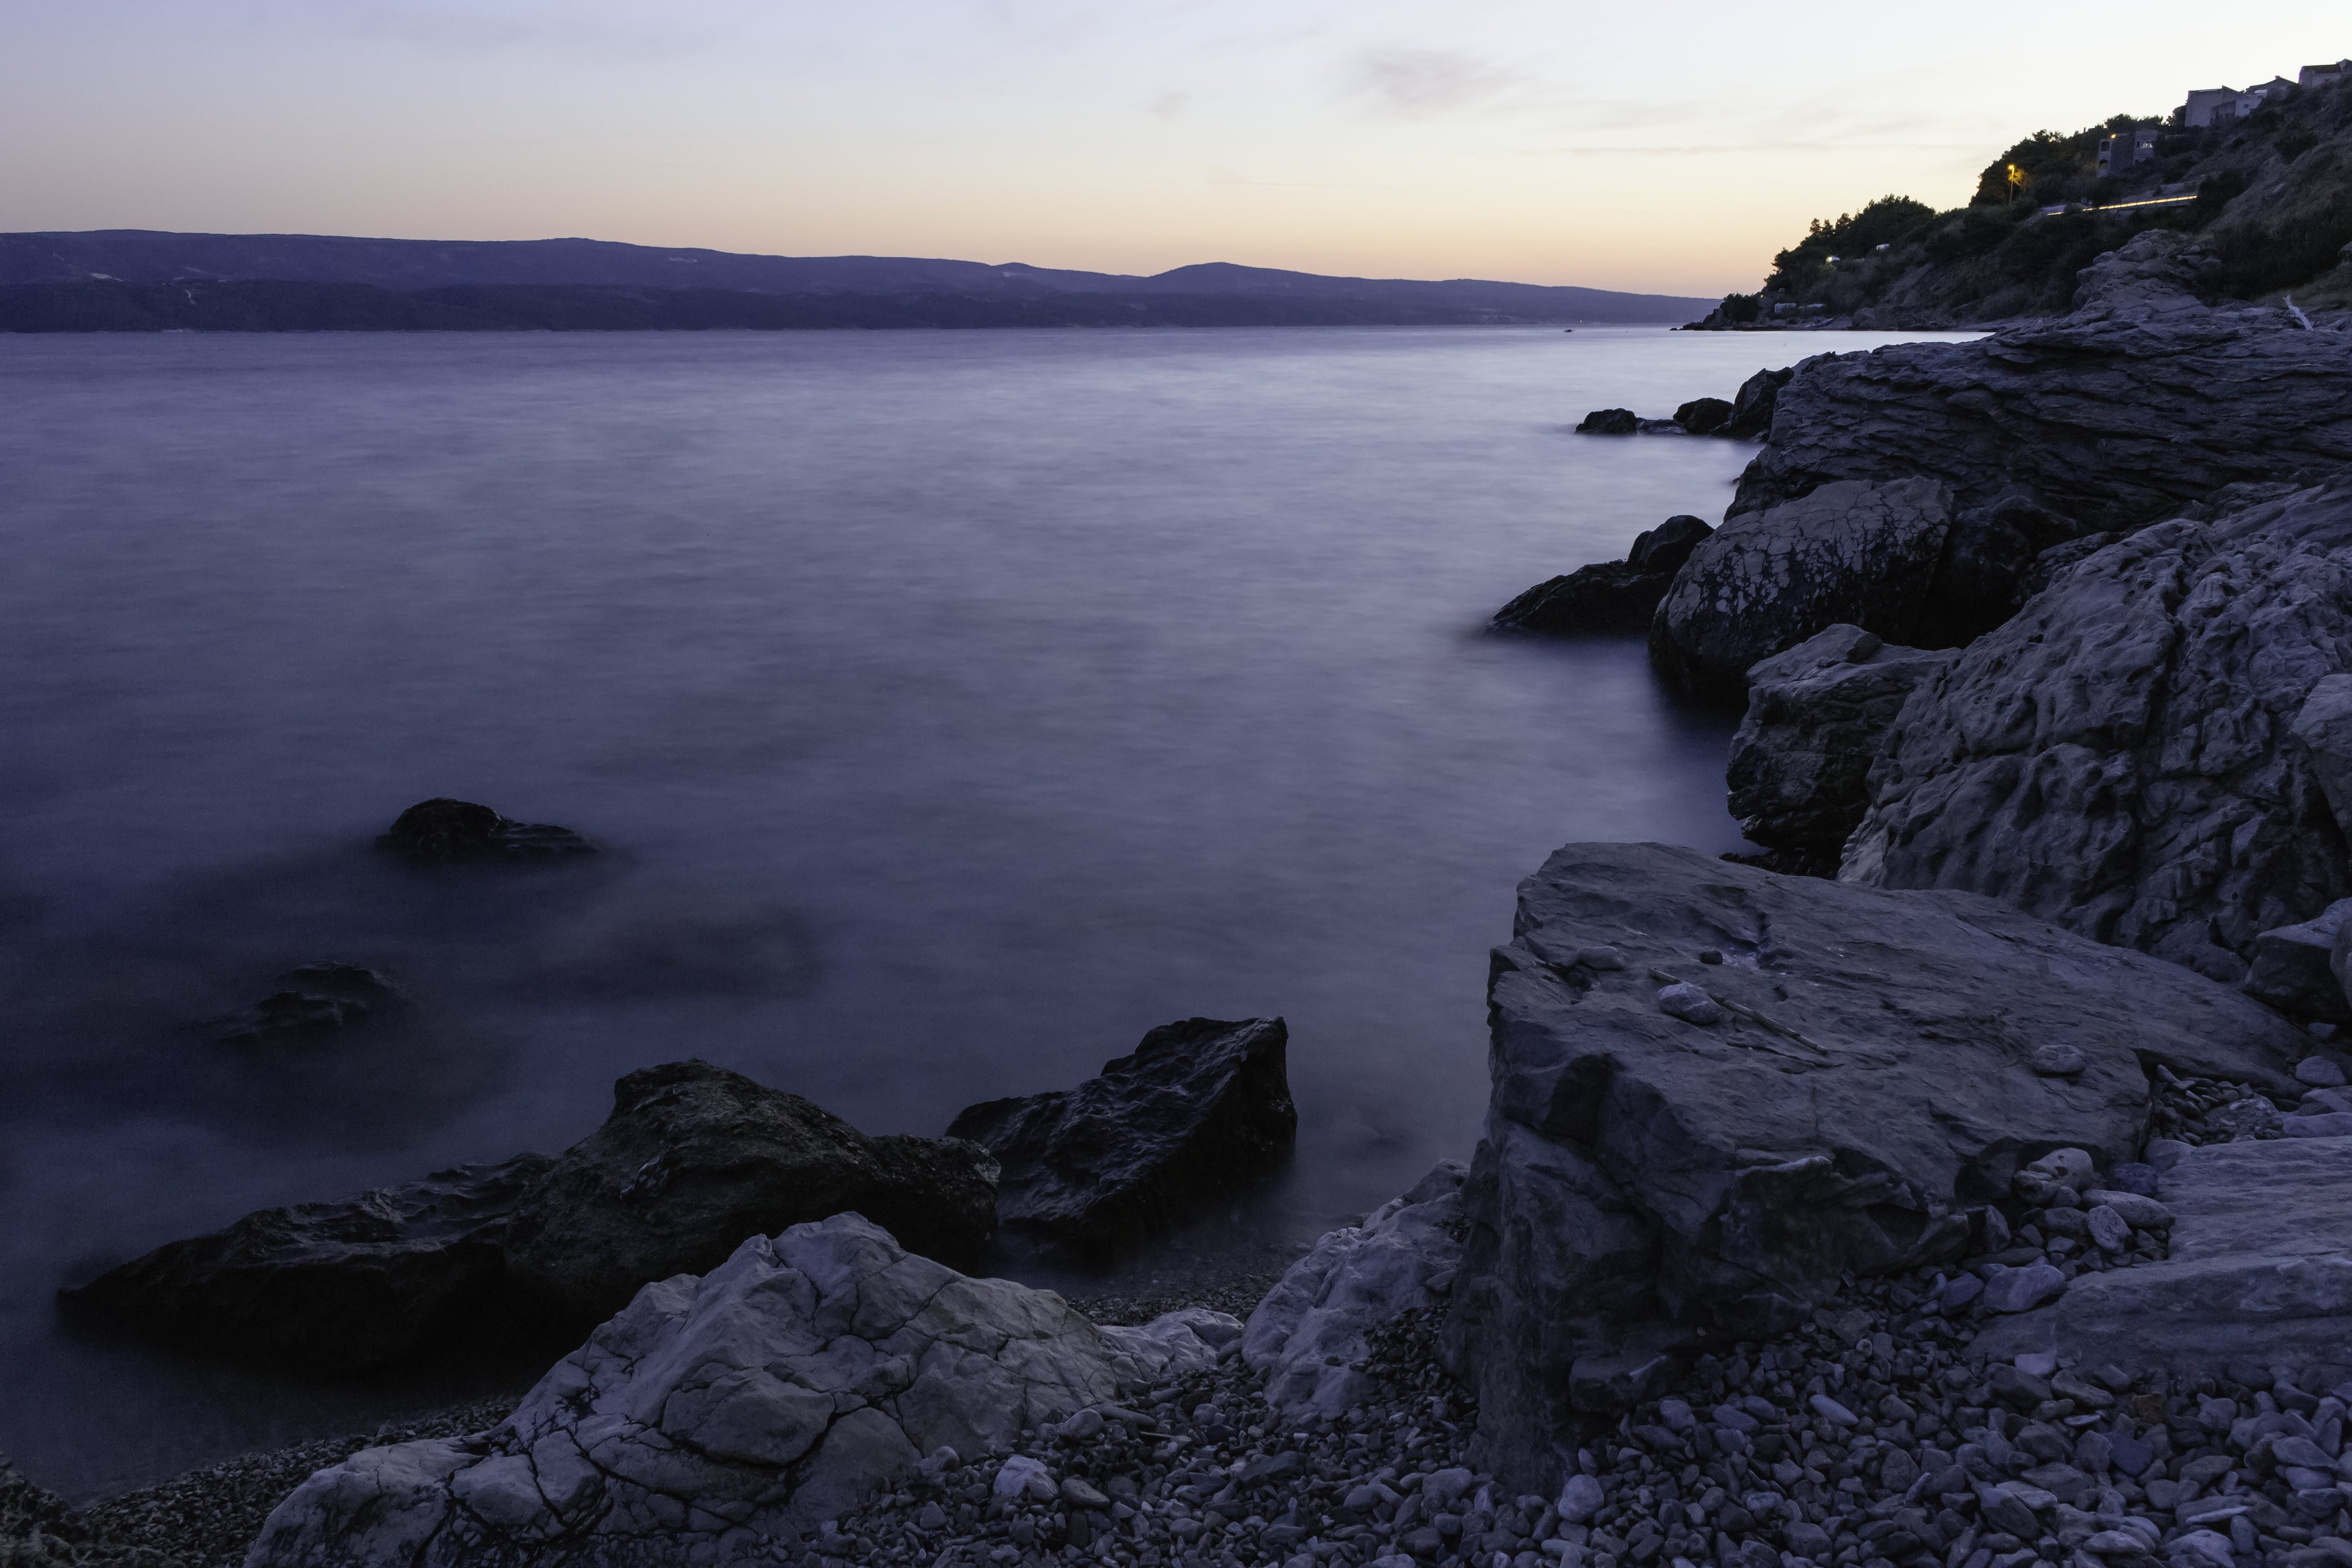 Photo of Calm Body of Water Beside Rock Formations